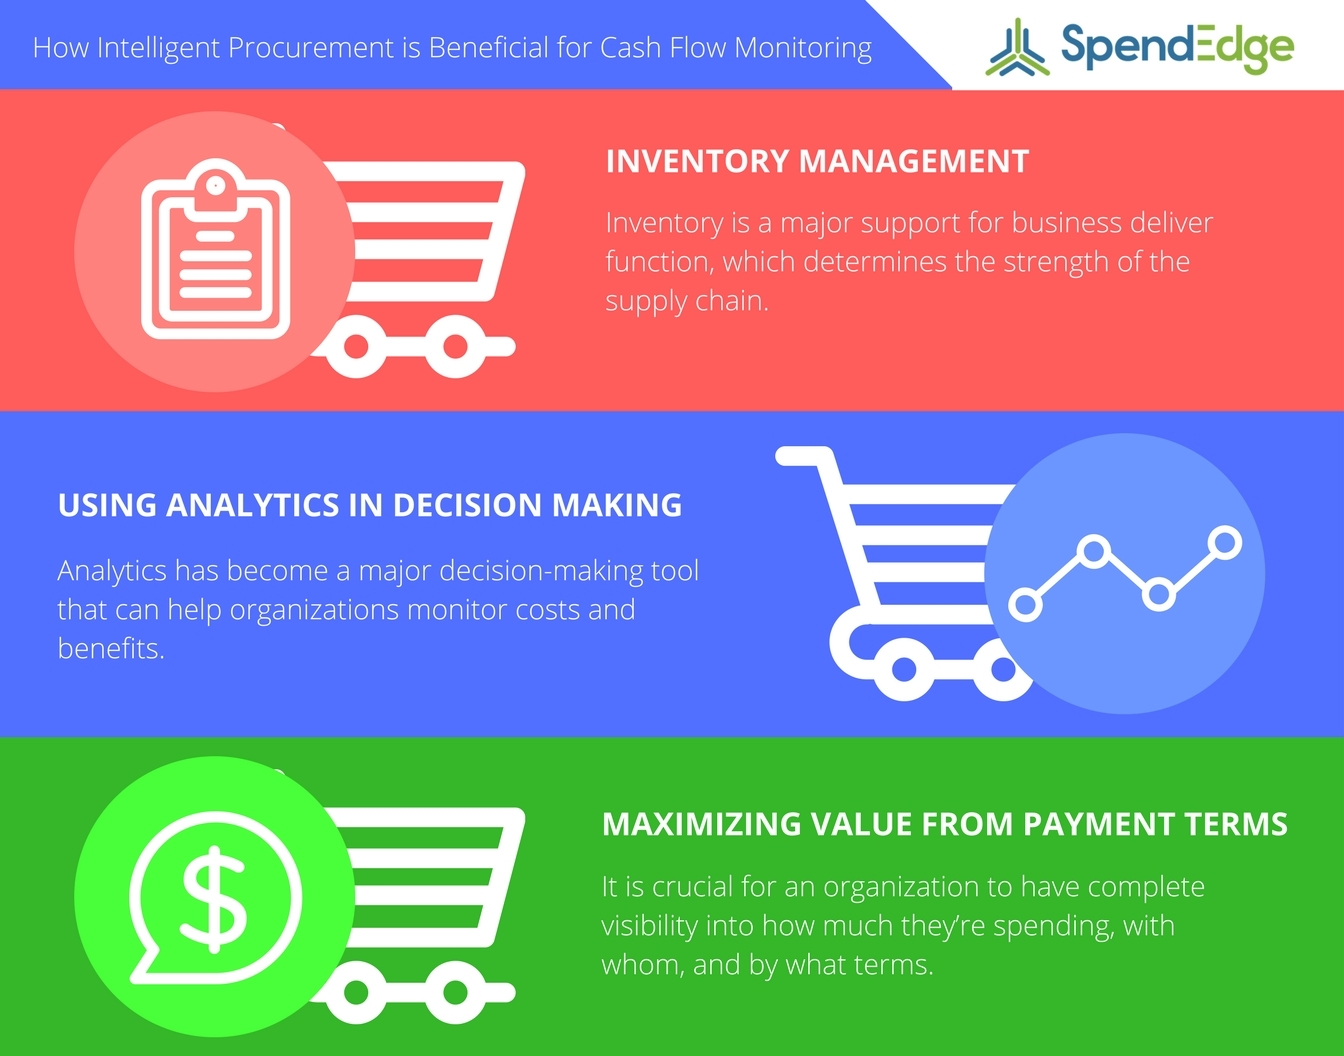 intelligent procurement can be a boon for monitoring company s cash